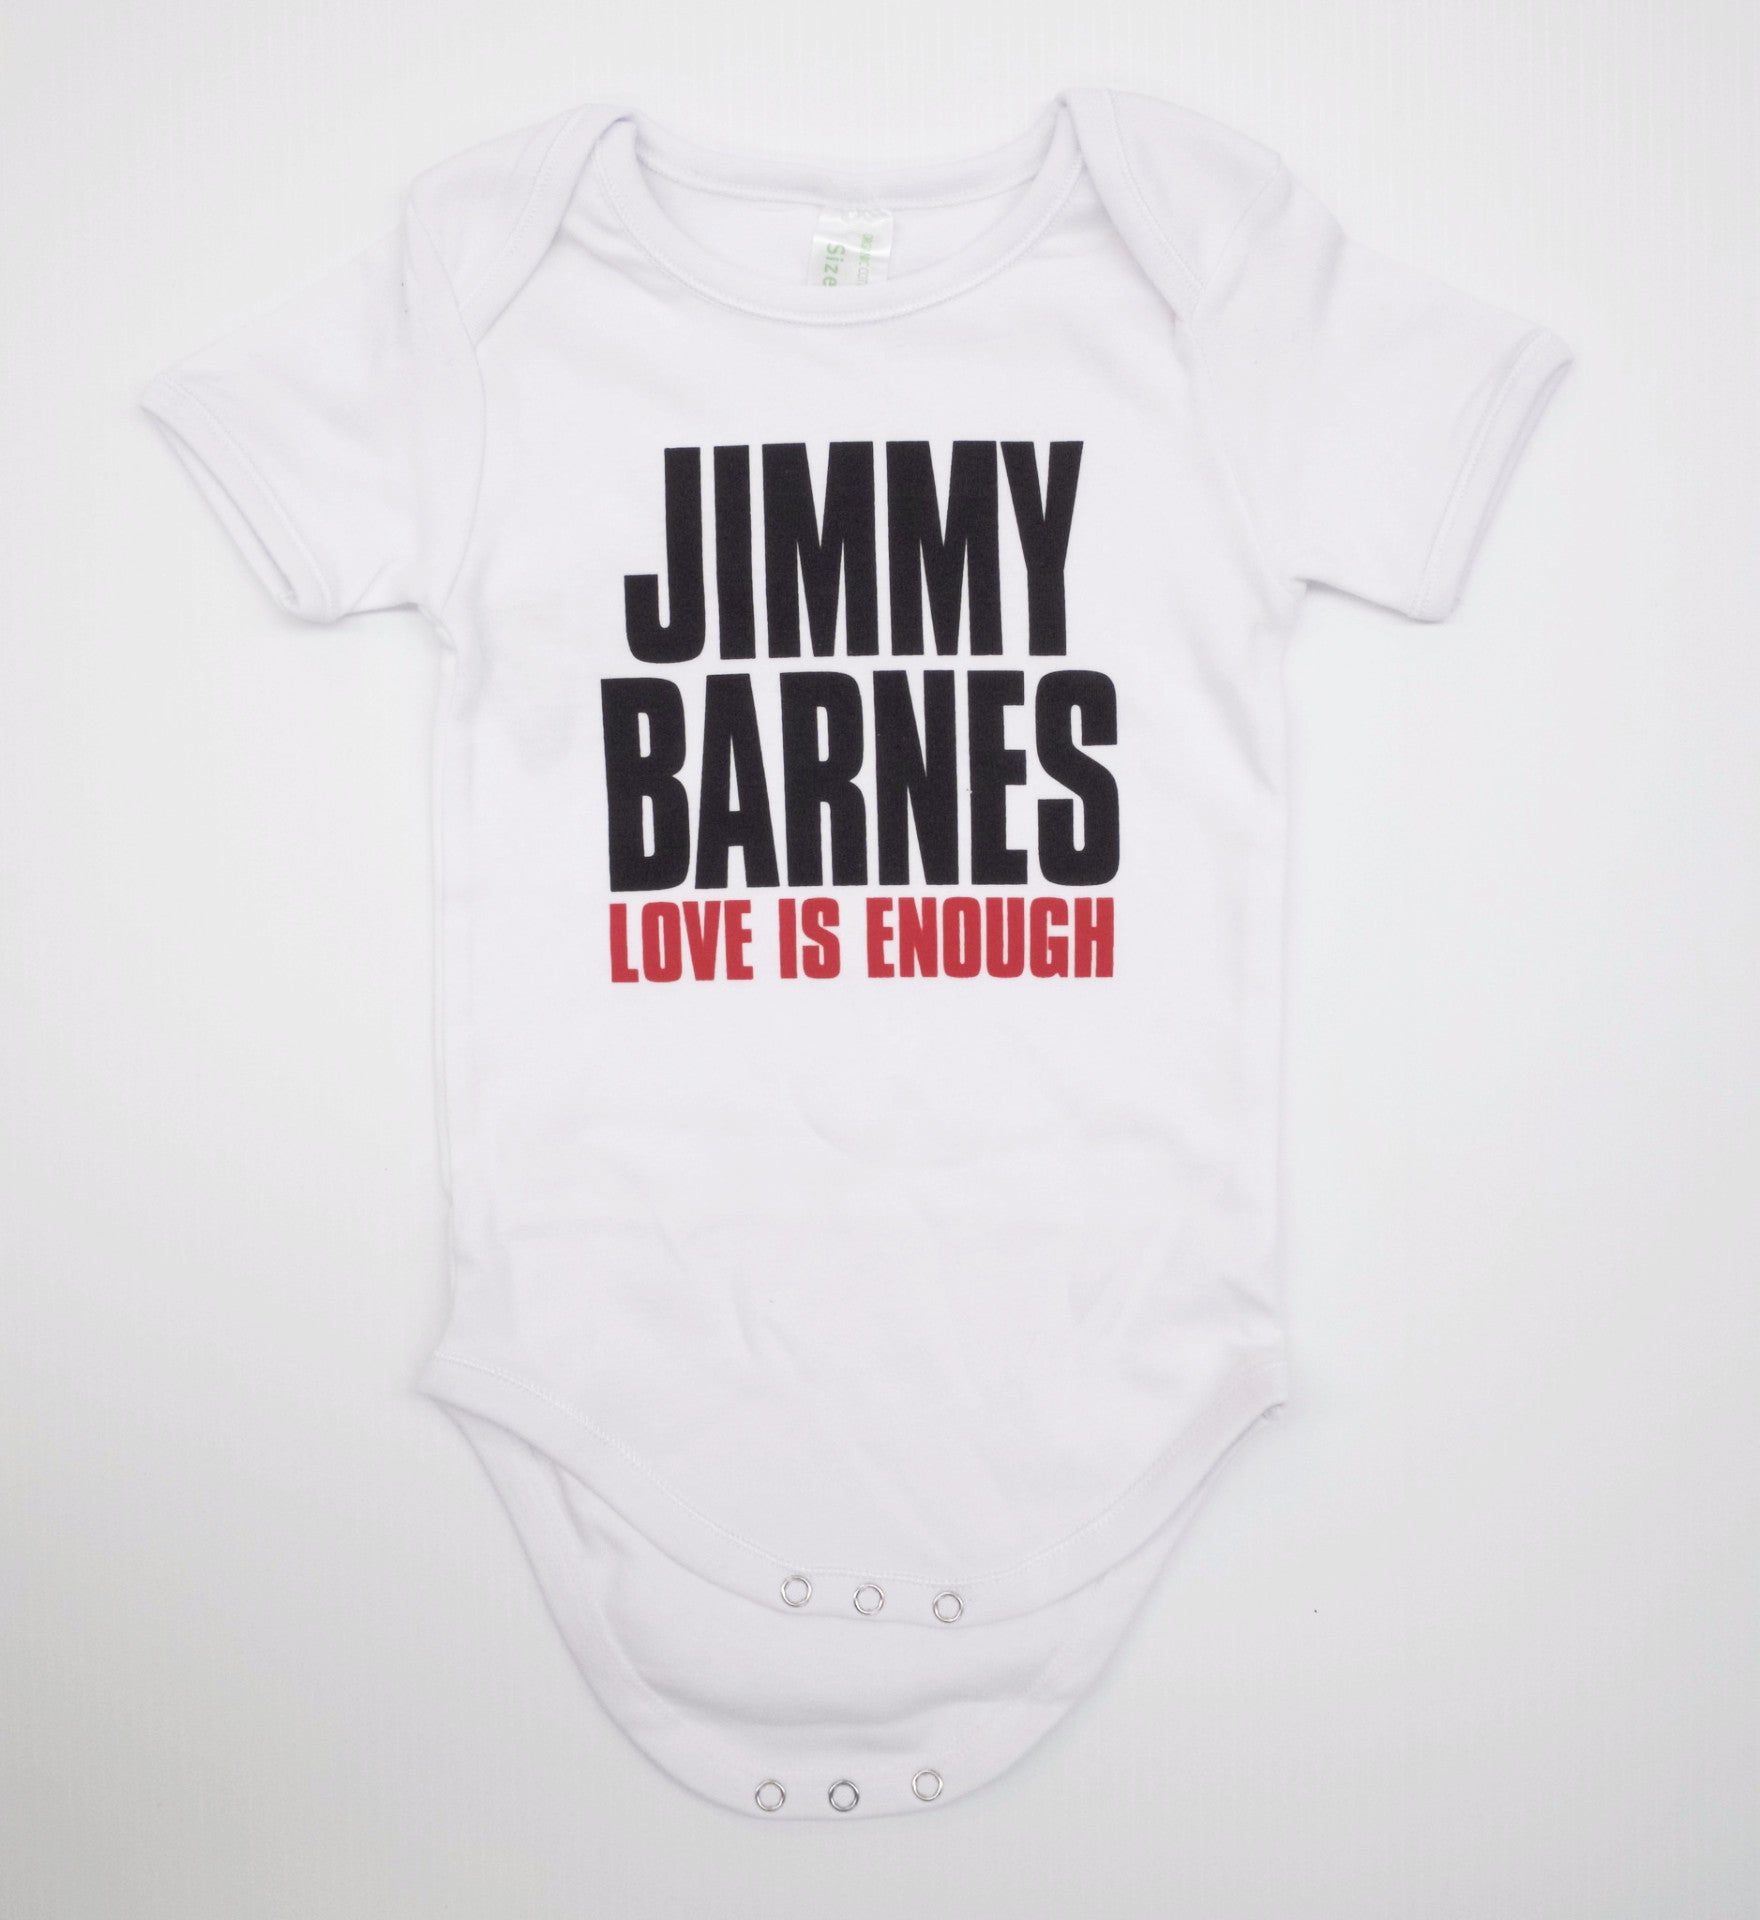 Jimmy Barnes 'Love is Enough' Romper